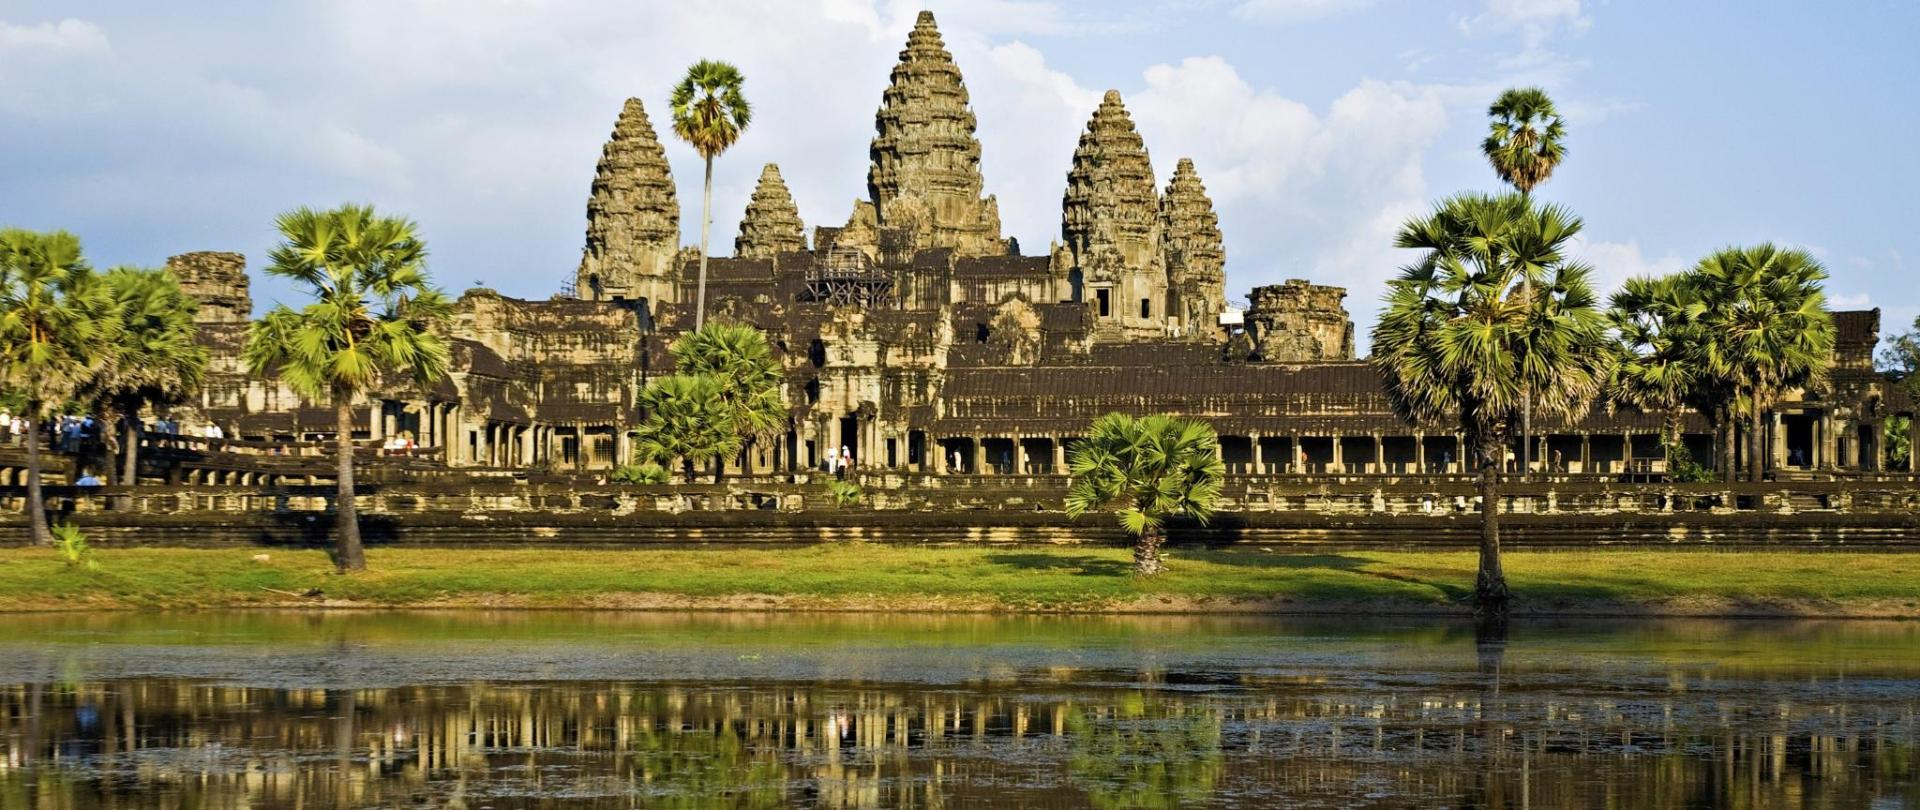 private-tour-angkor-wat-and-the-royal-temples-full-day-tour-155185-raw.jpg